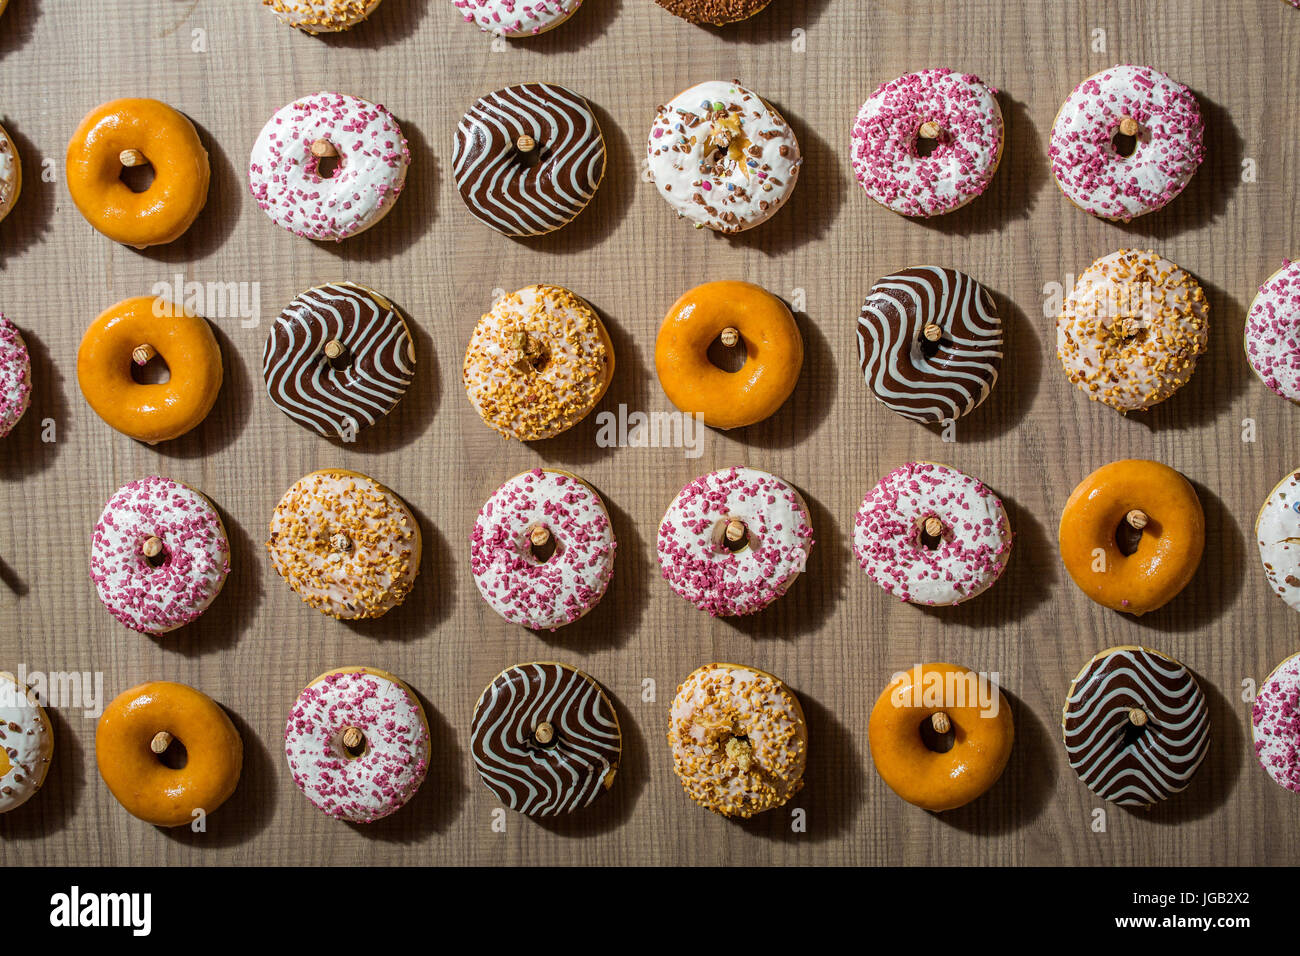 Delicious , colorful doughnuts in a row - Stock Image